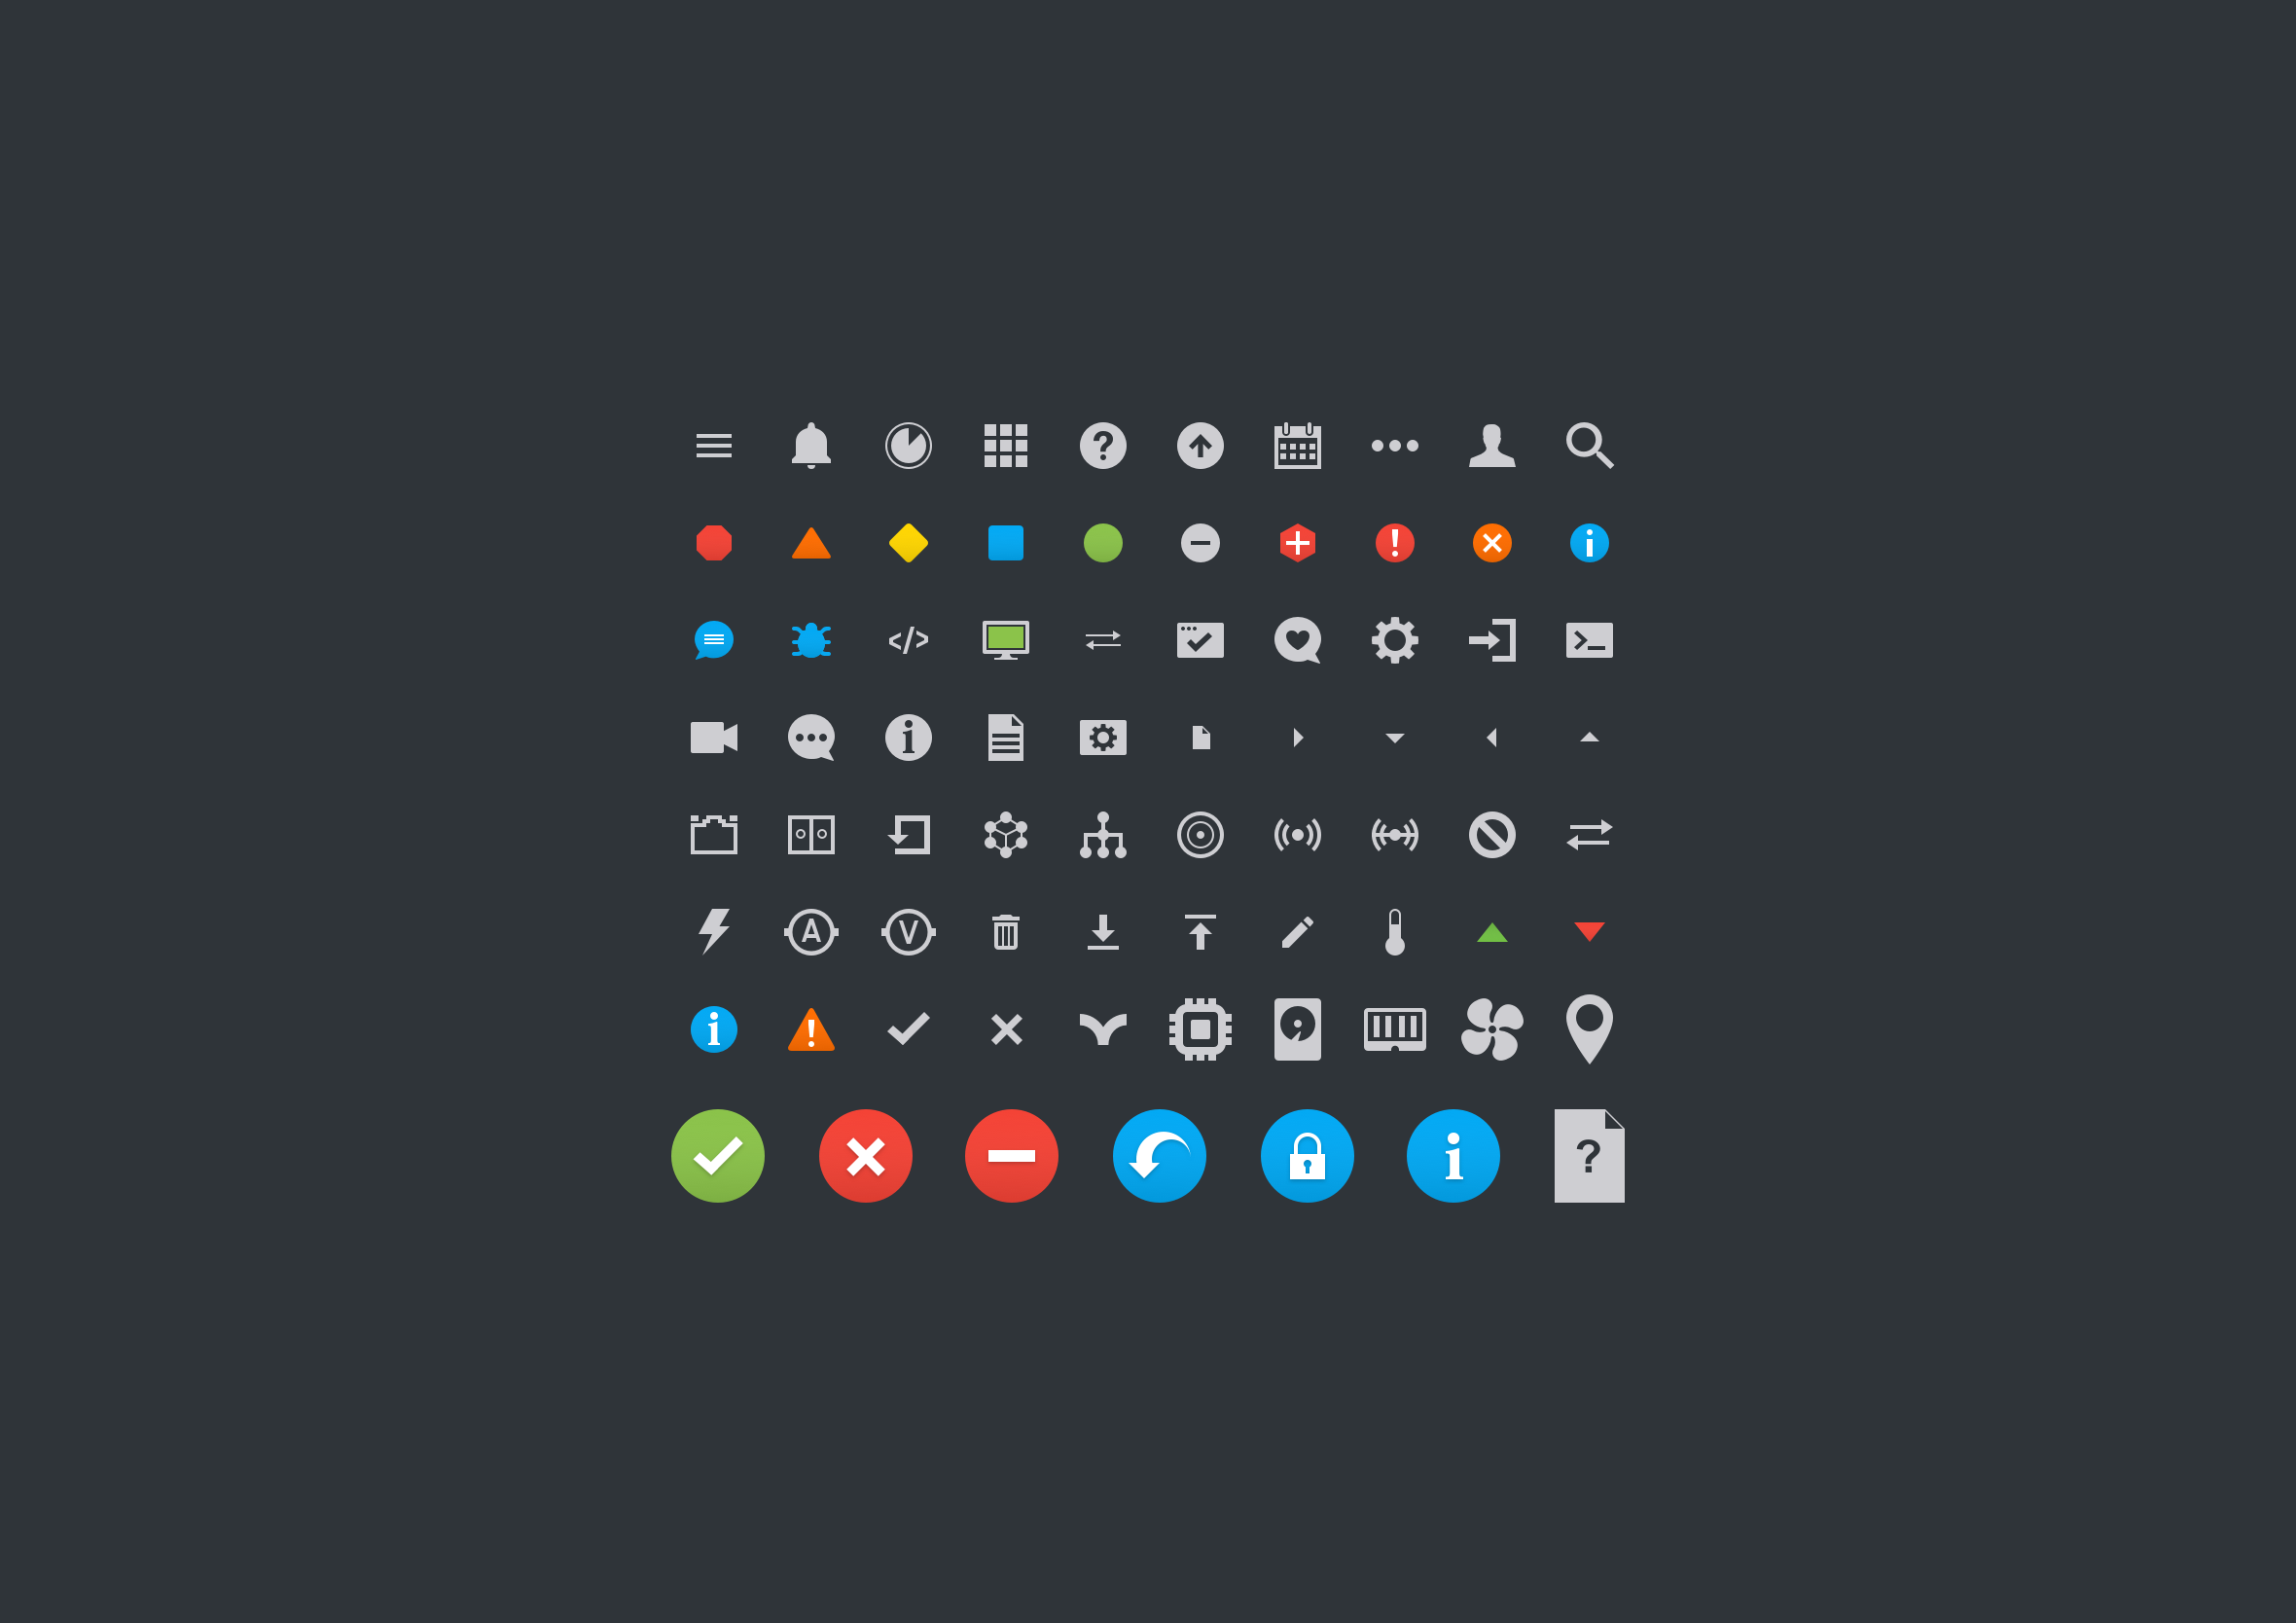 Networking dashboard icons